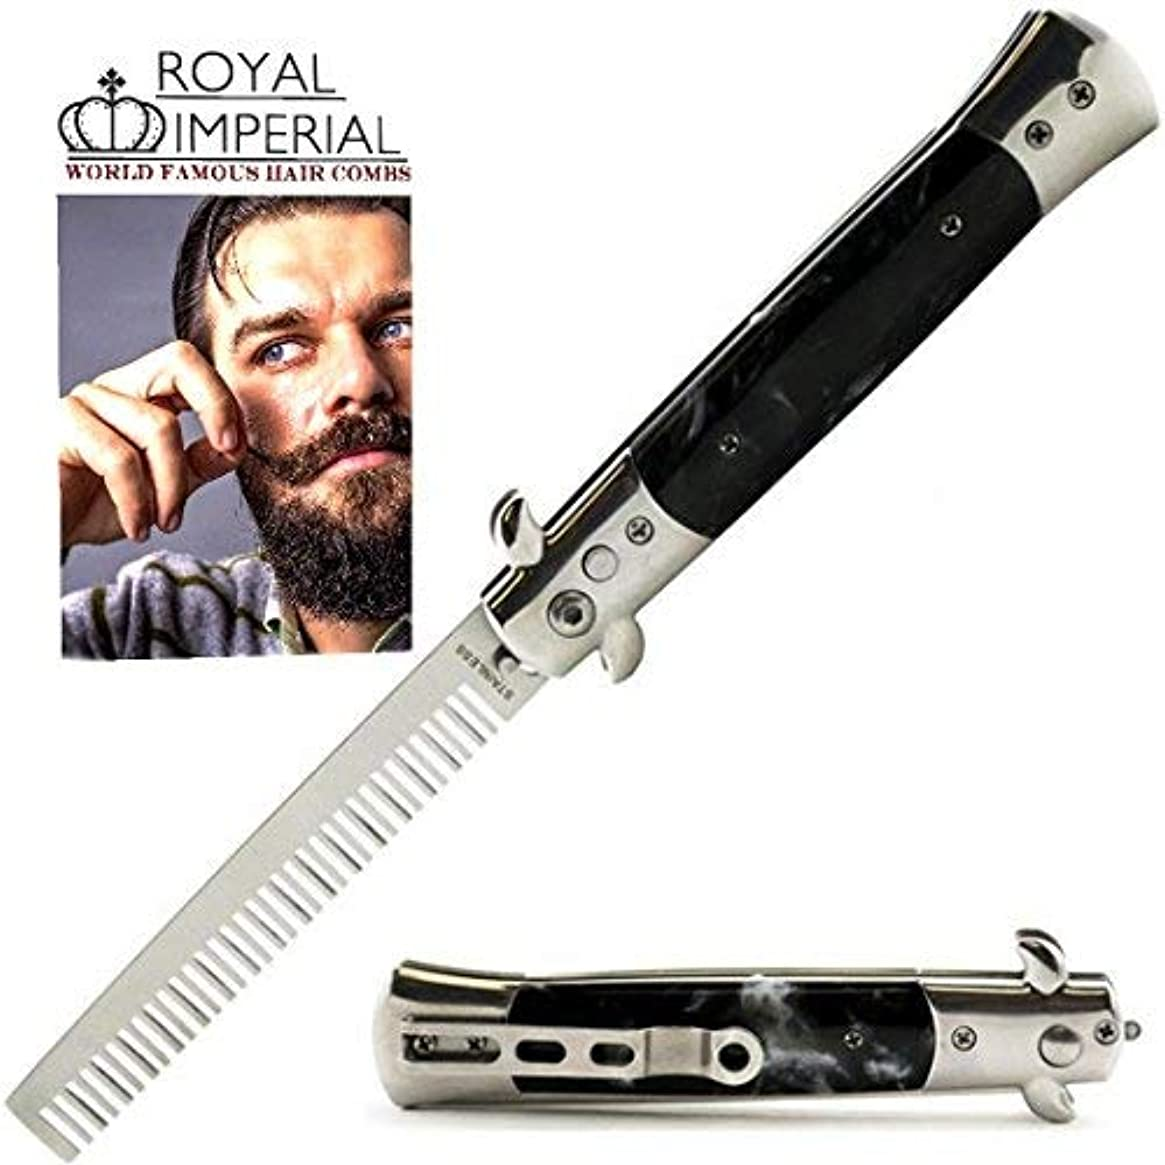 銀河パートナー飼い慣らすRoyal Imperial Metal Switchblade Pocket Folding Flick Hair Comb For Beard, Mustache, Head Black Pearl Handle ~...